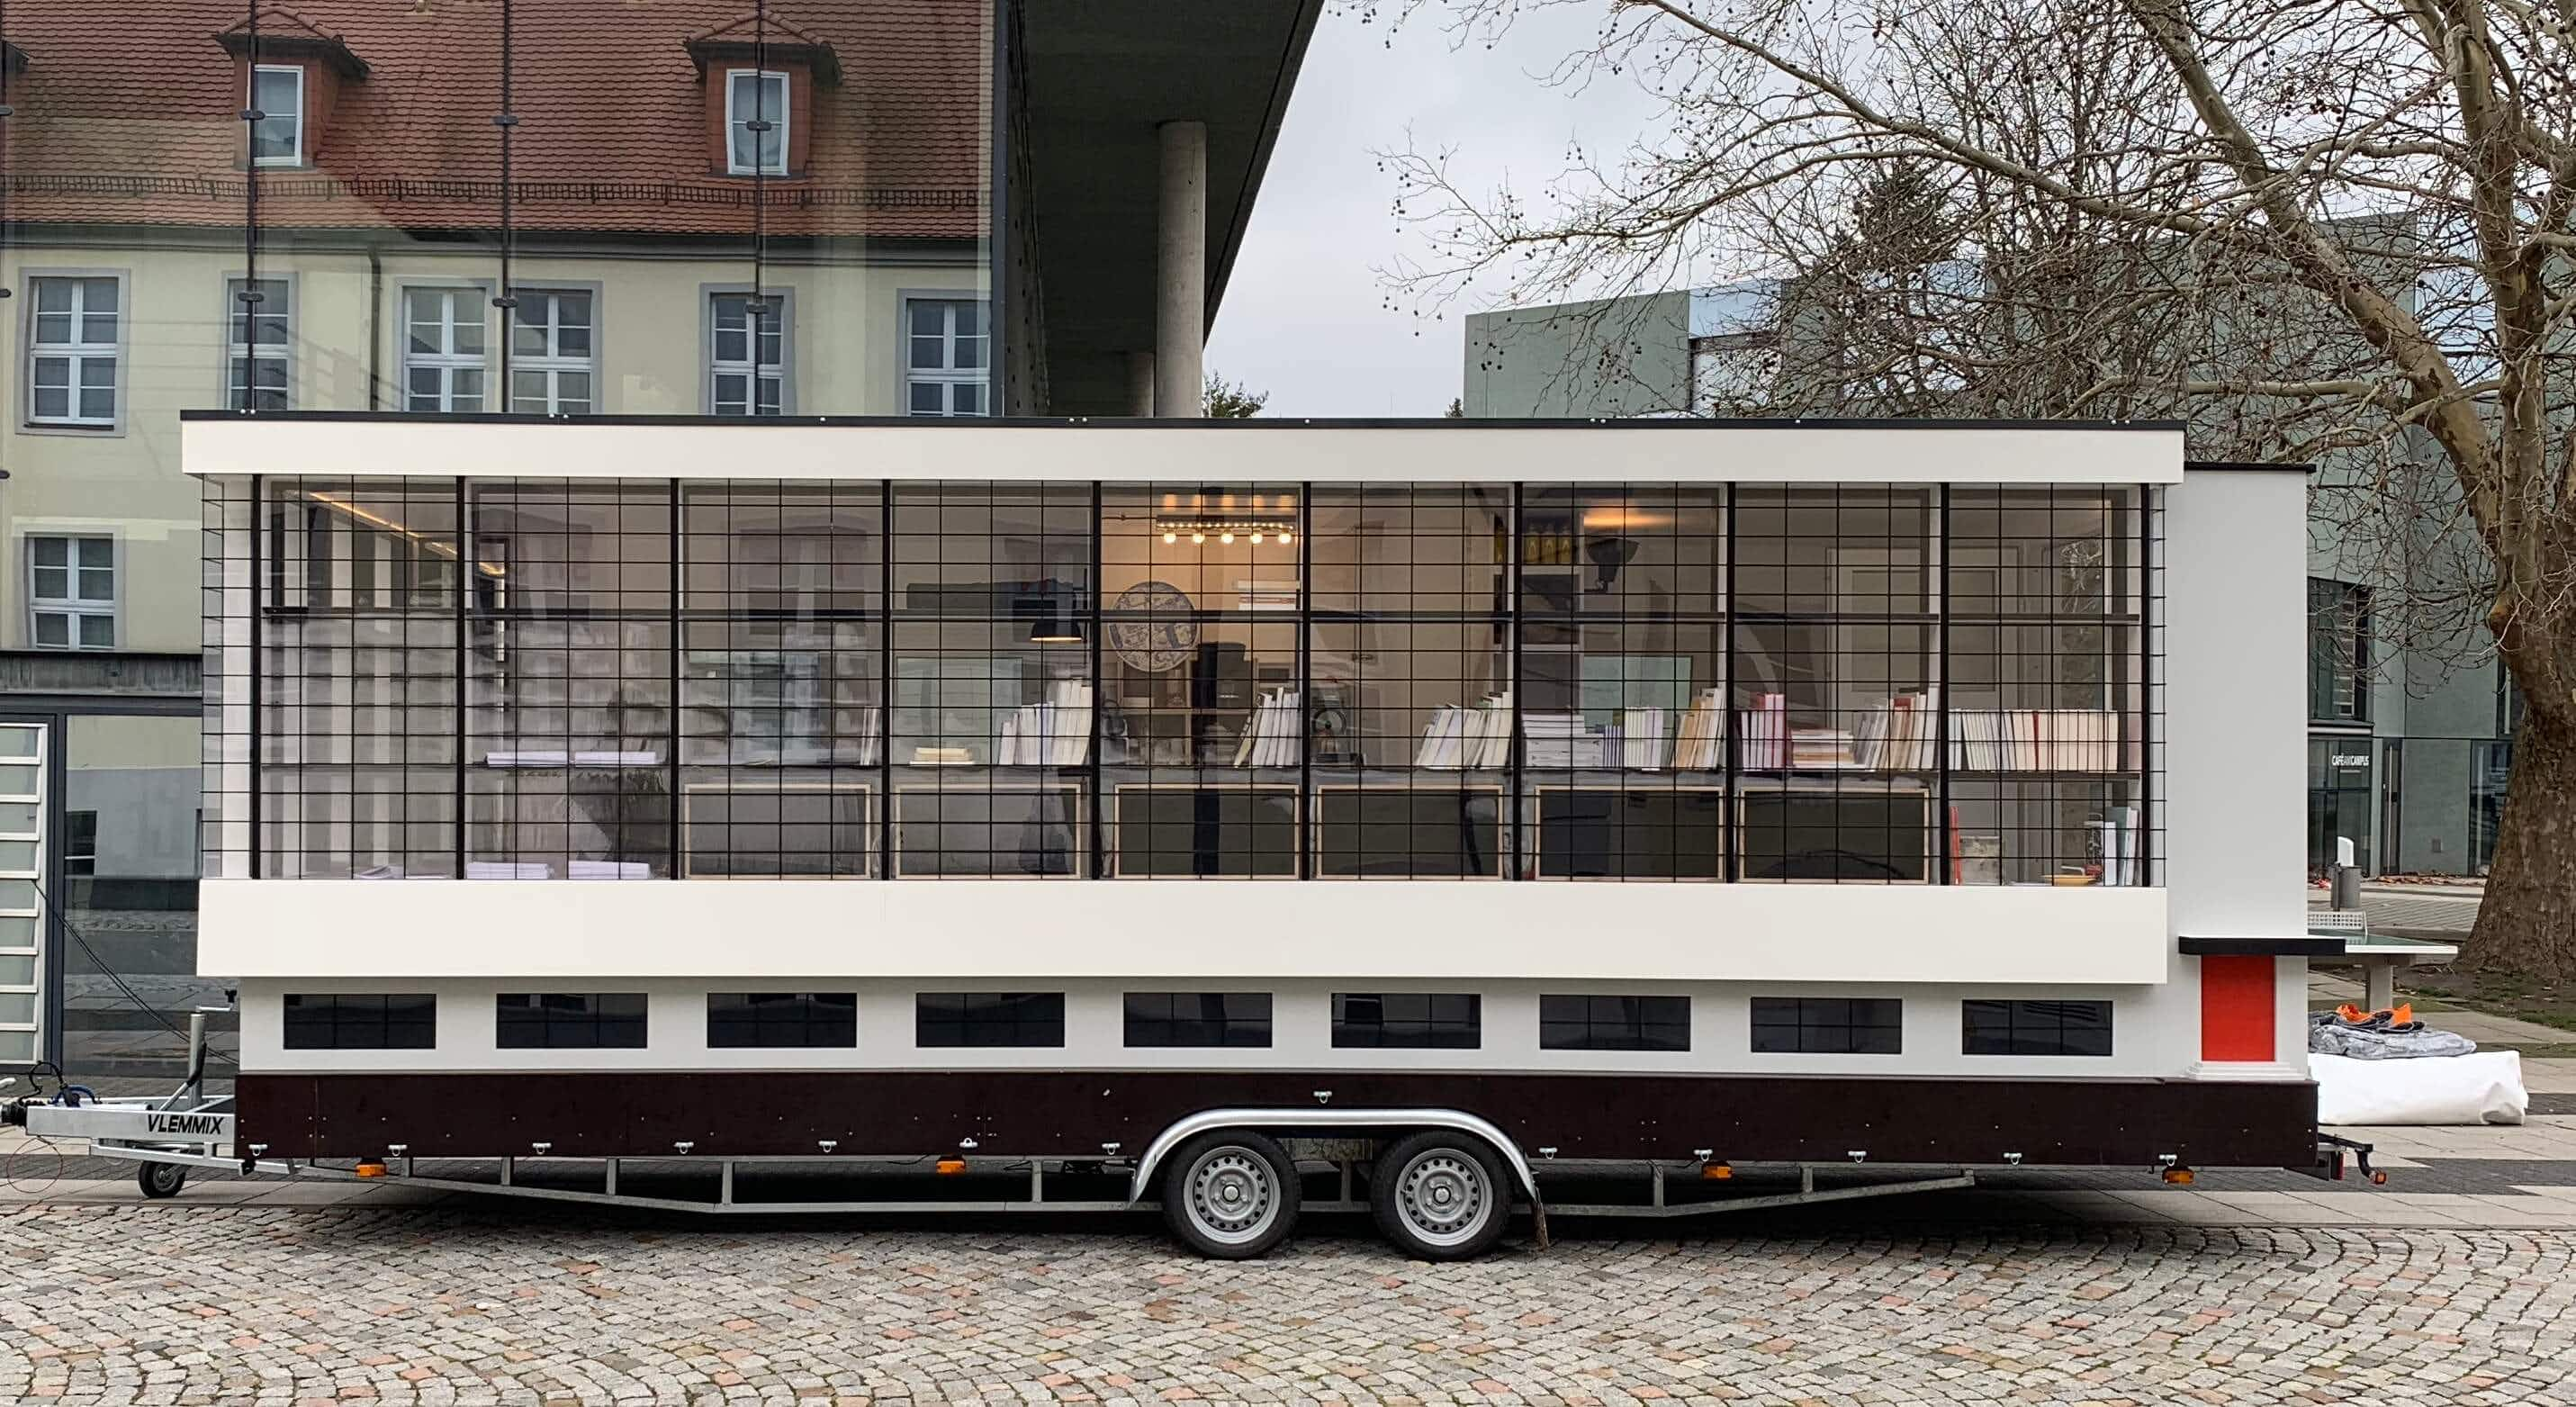 Bauhaus bus travels the world to celebrate school's 100th anniversary with a 'critical twist'